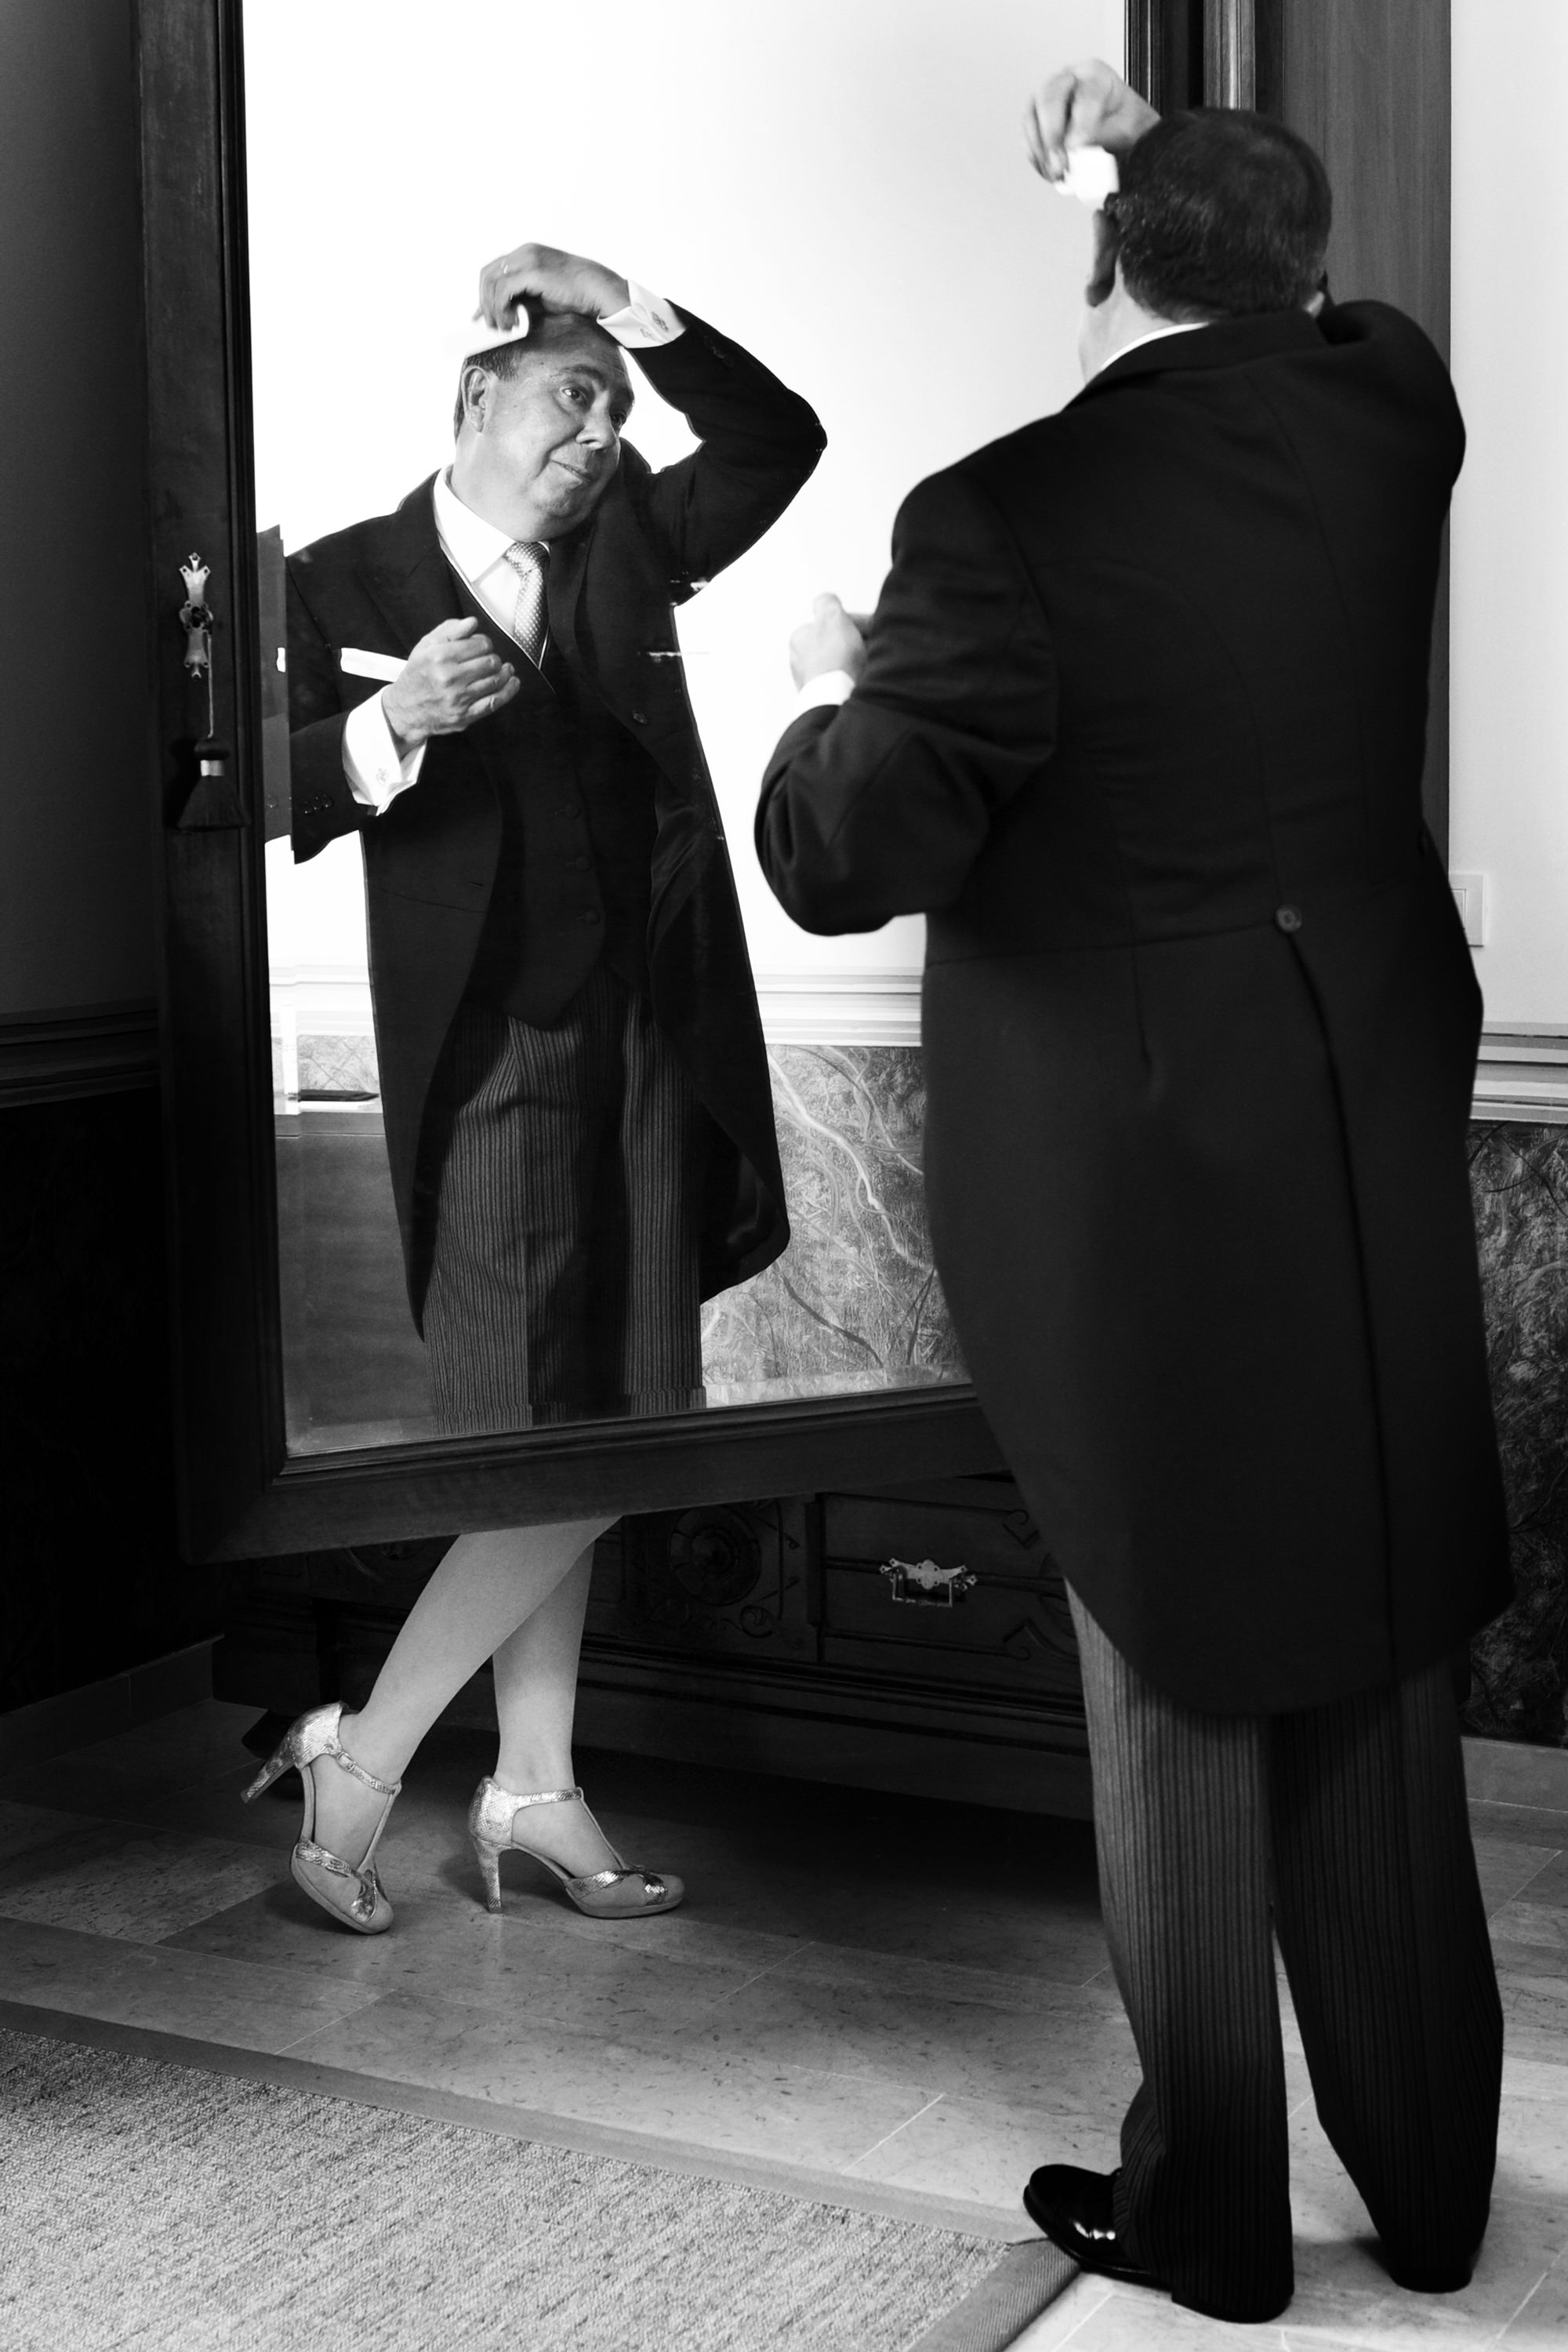 Funny photo of dad getting ready - photo by Look Fotographica